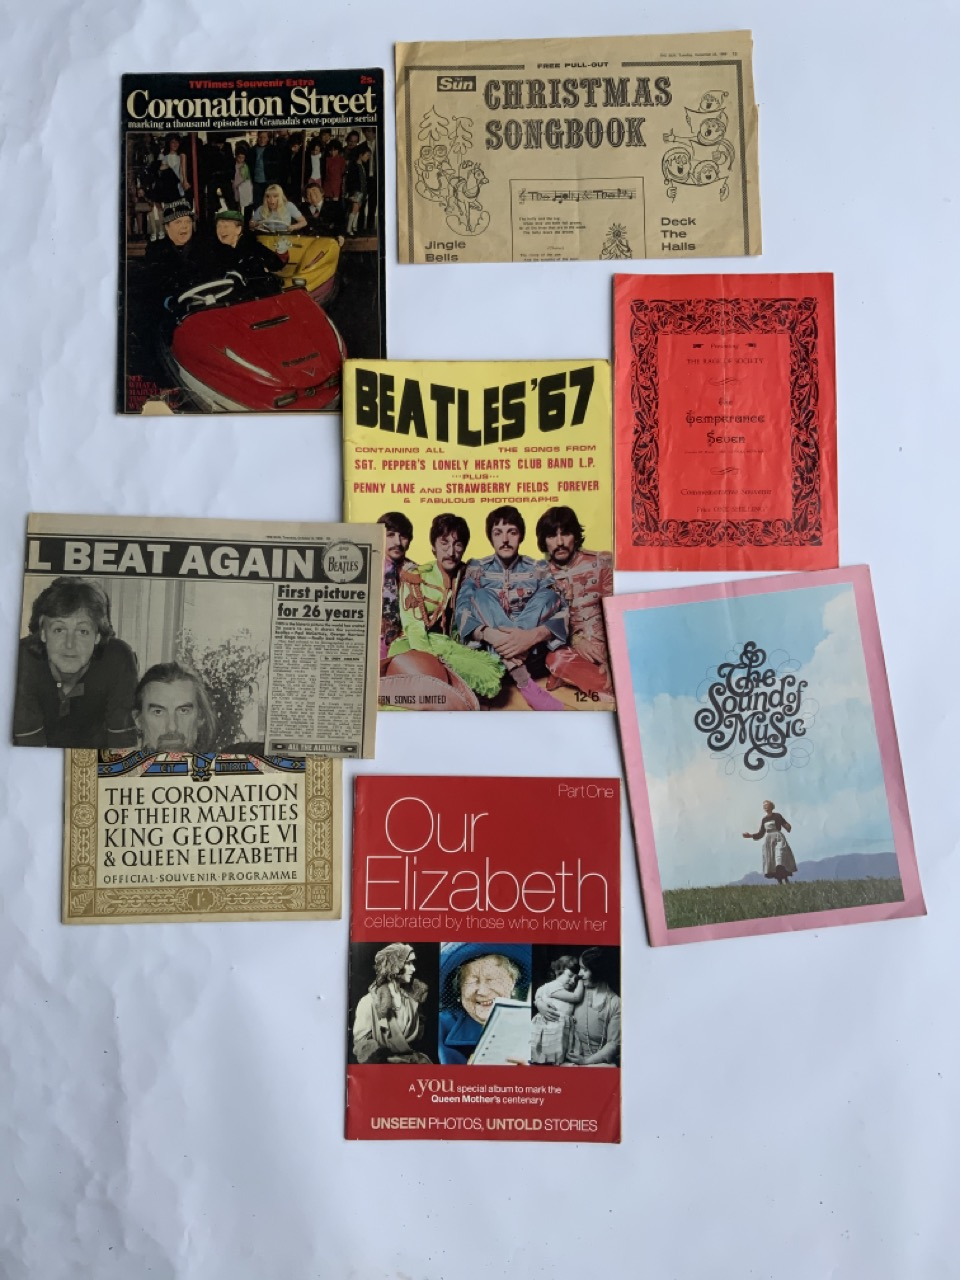 The Beatles 1967 song book contains all songs from SGT. Pepper Lonely Heart Club Band plus